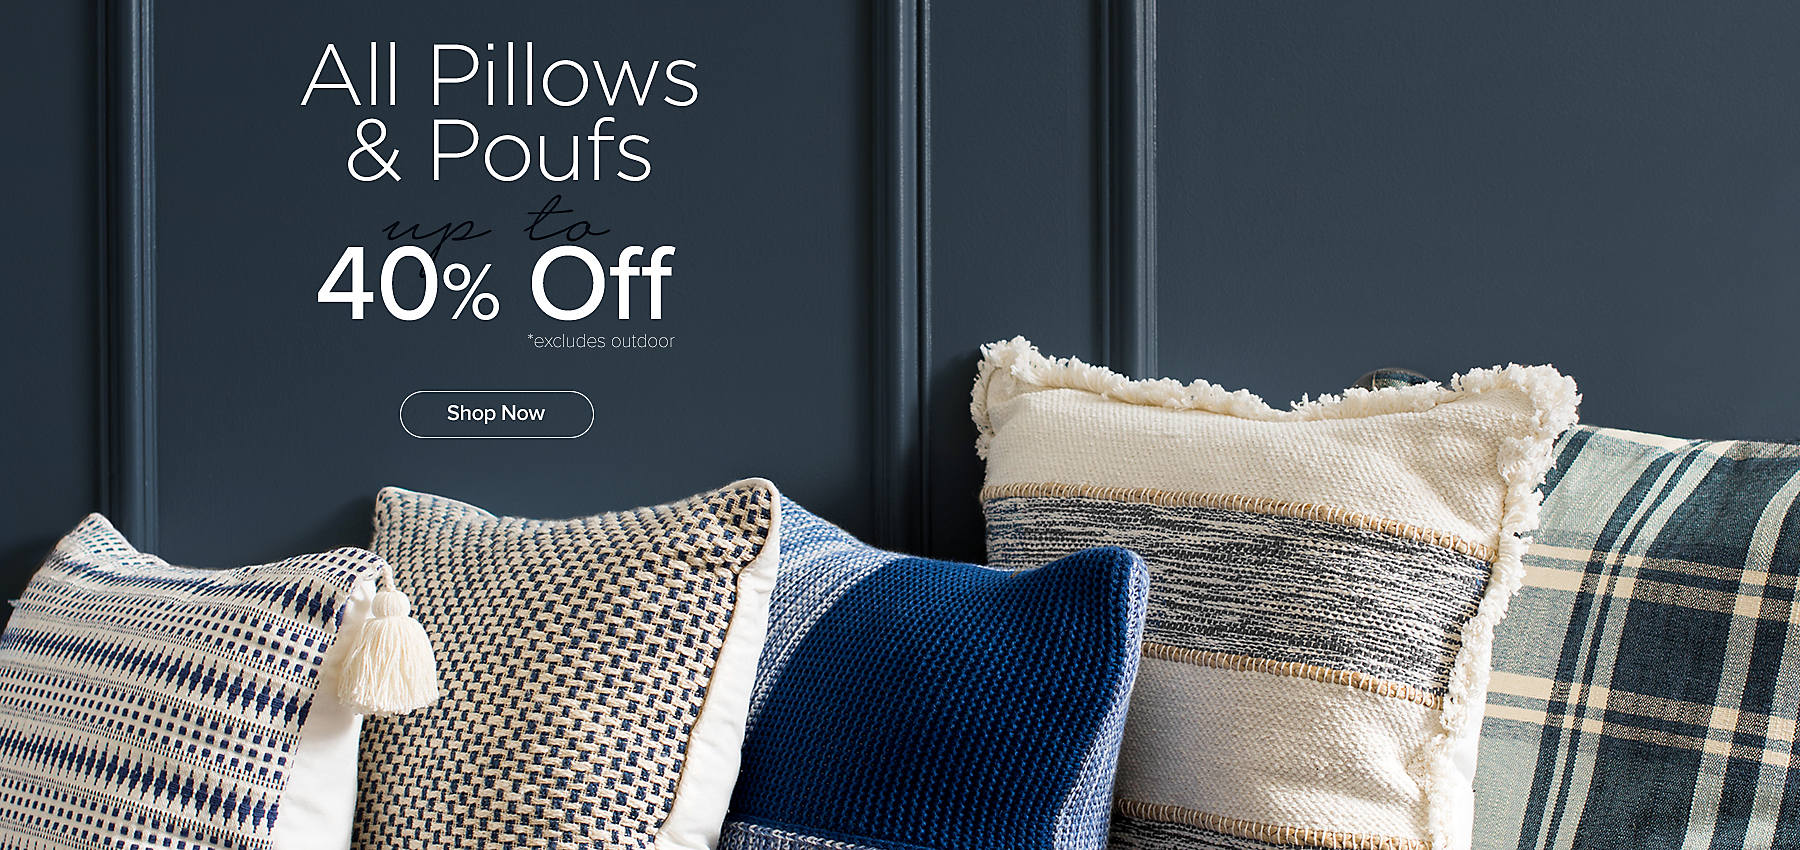 Up to 40% Off All Pillows - Shop Now